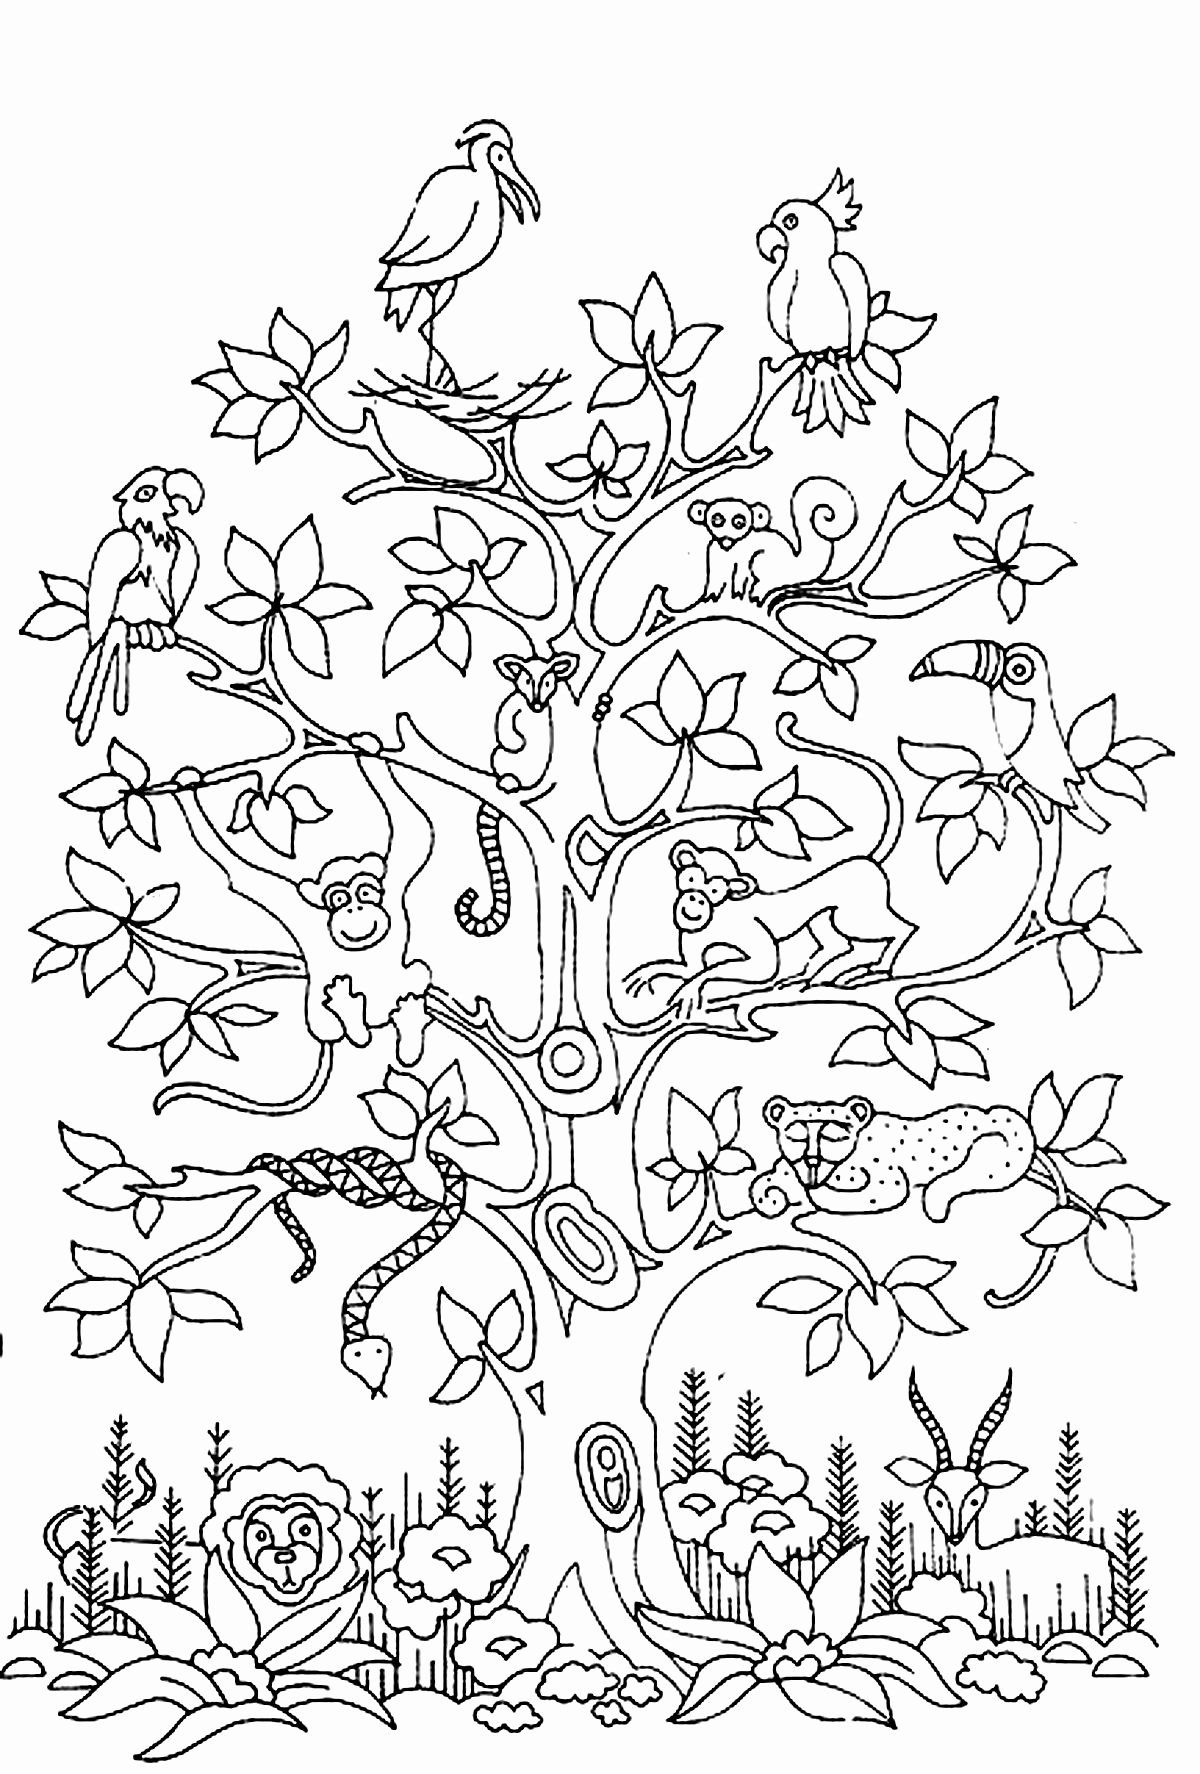 Easy And Hard Coloring Pages Of Monkeys Monkey Coloring Pages Coloring Pages Easy Coloring Pages